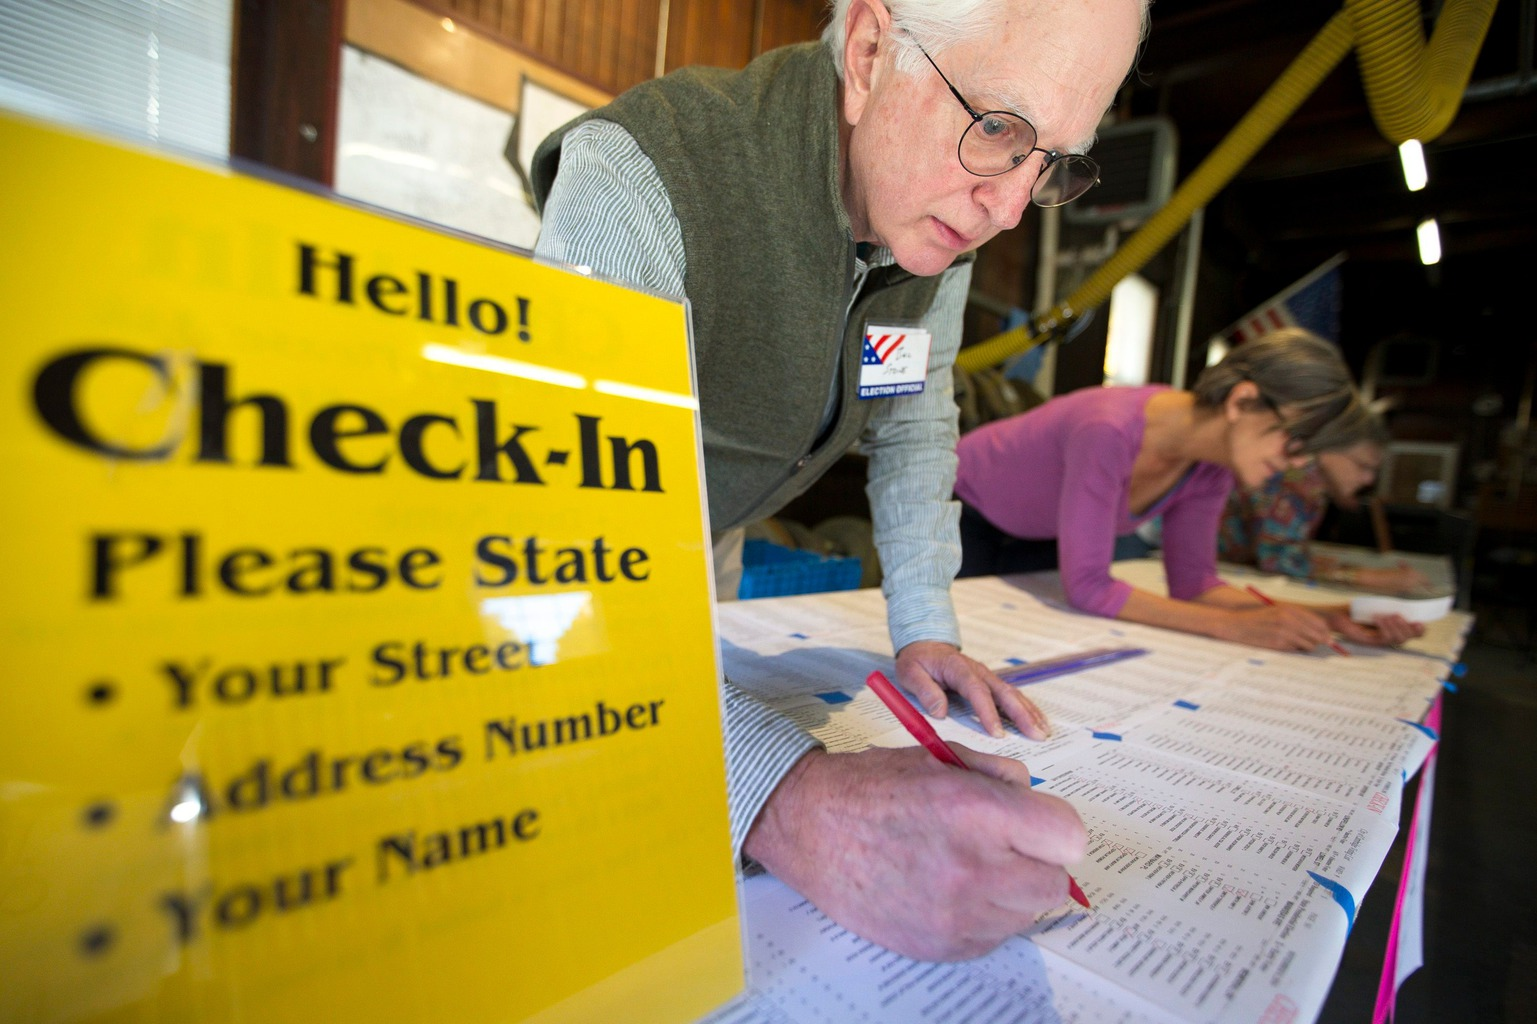 epa05623005 Poll workers William Stone and Nonie Valentine check voters in at the Lexington Avenue Fire House in Cambridge, Massachusetts, USA, 08 November 2016. Americans vote on Election Day to choose the 45th President of the United States of America to serve from 2017 through 2020. EPA/LISA HORNAK